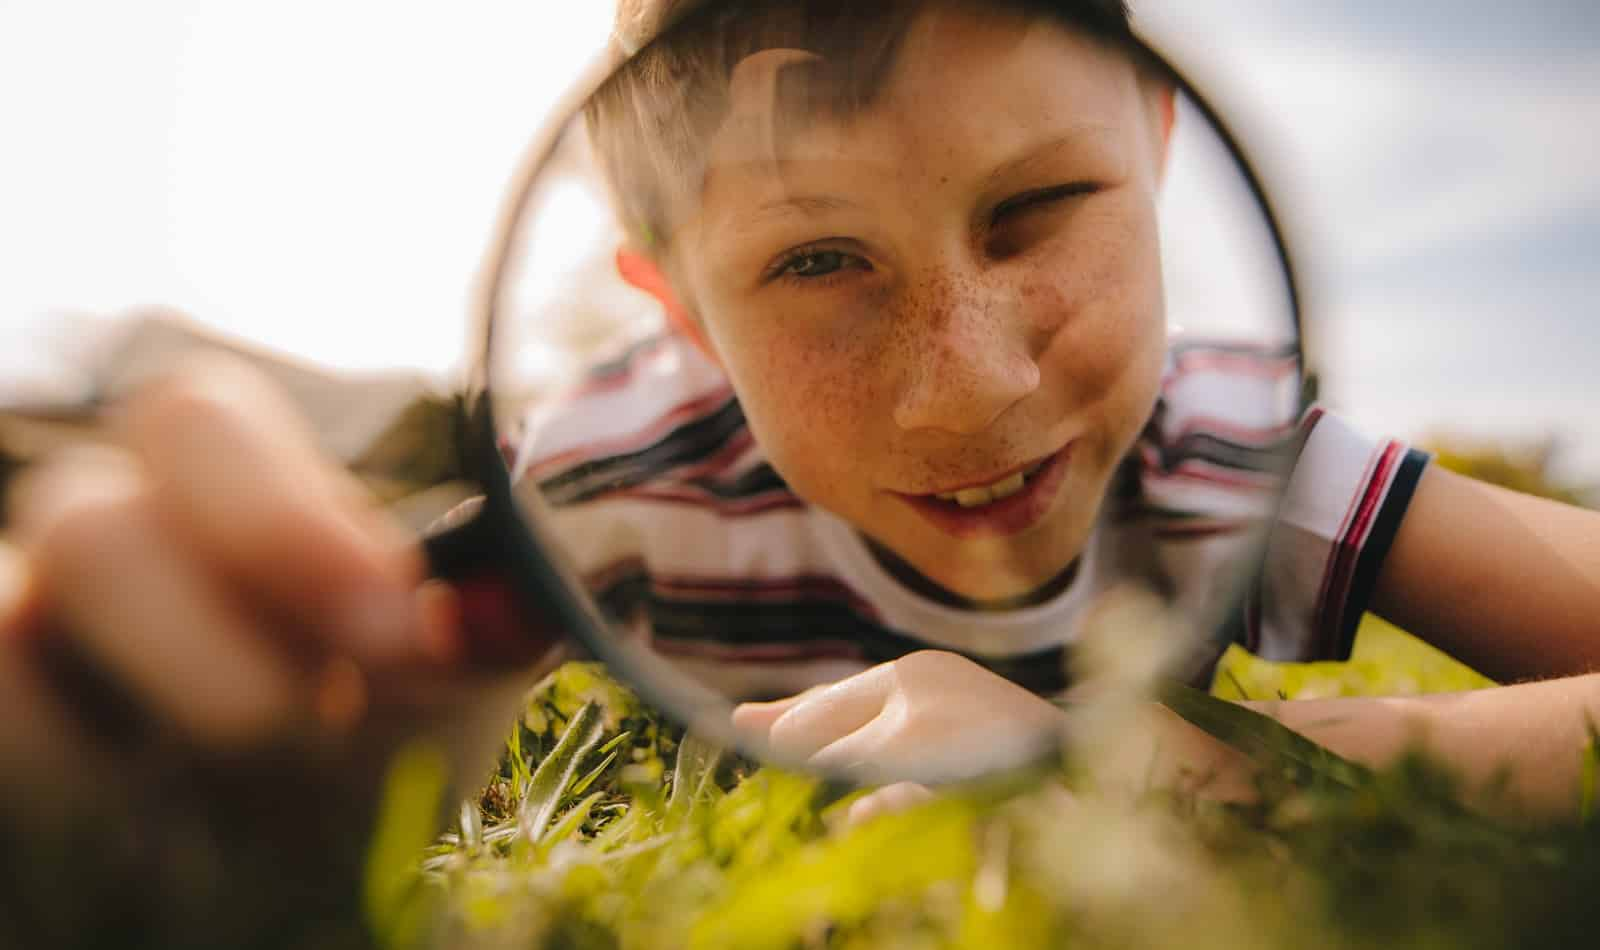 Boy looking through magnifying glass. cute boy exploring with magnifying glass.